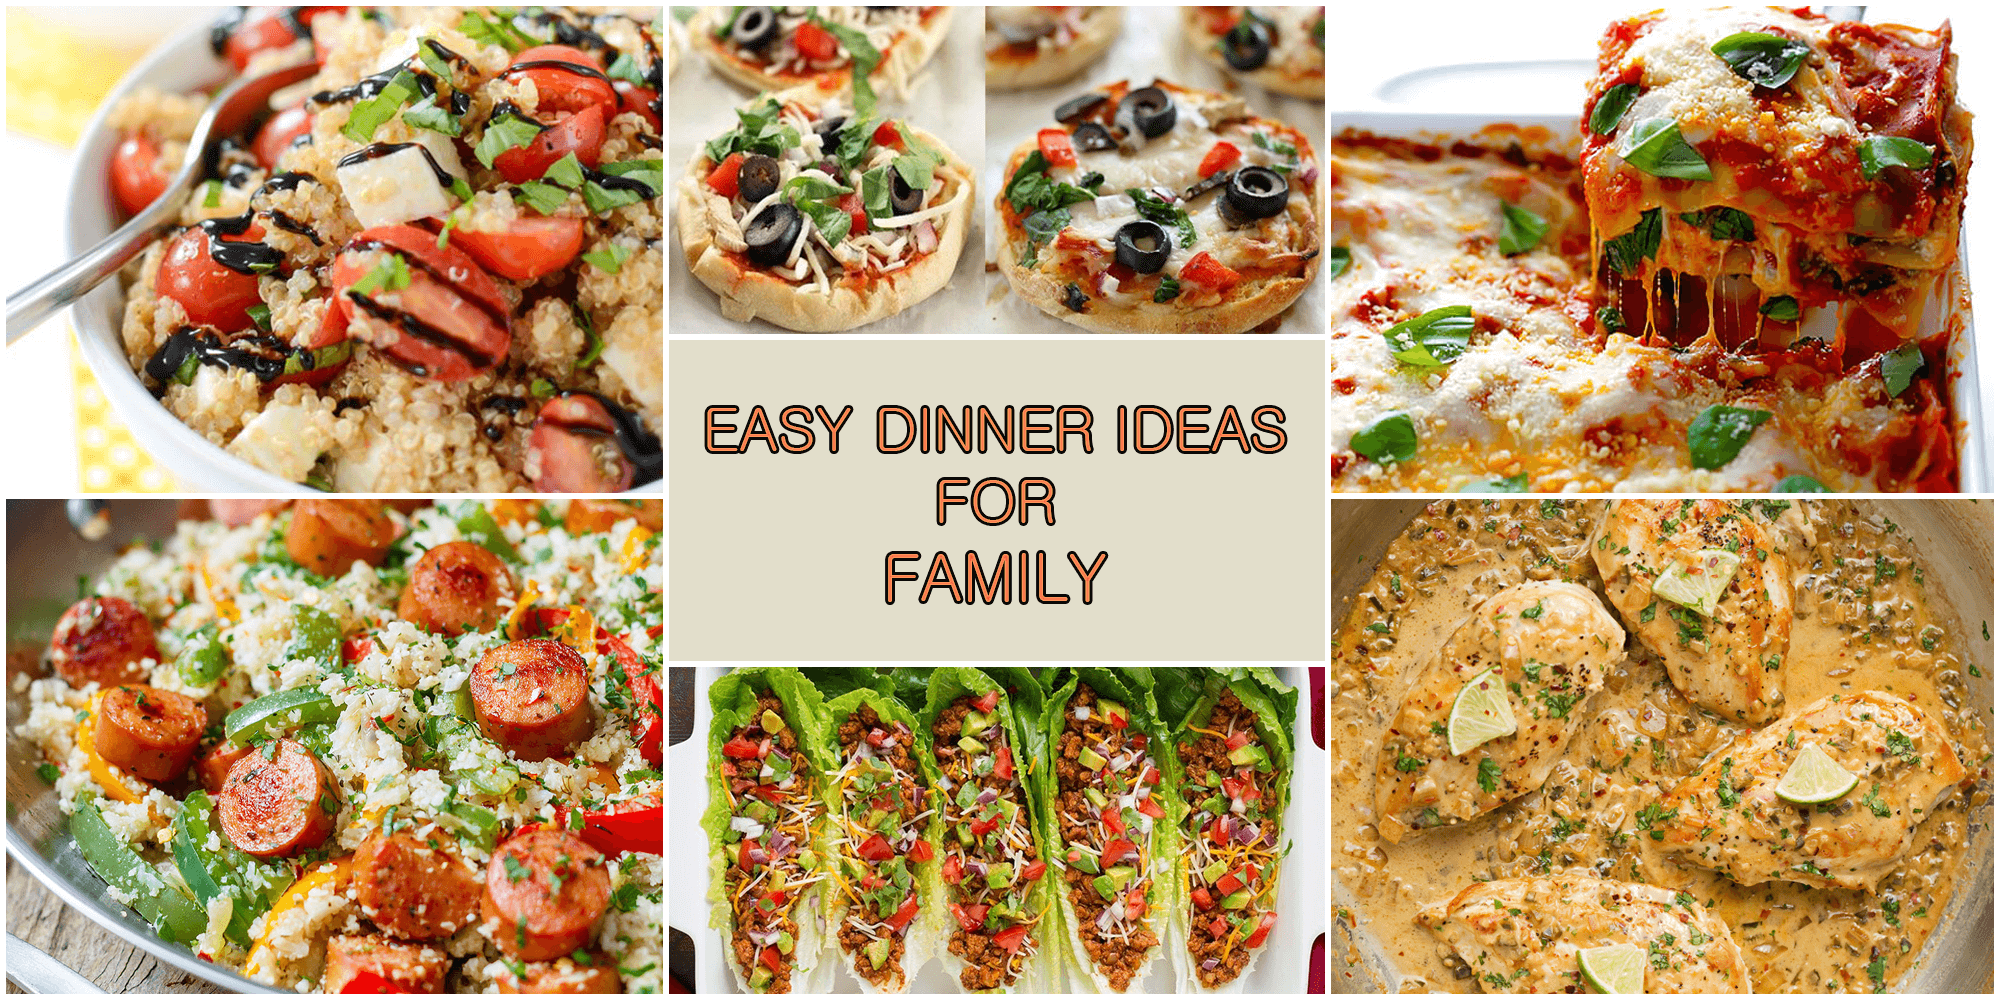 healthy and easy dinner ideas for family